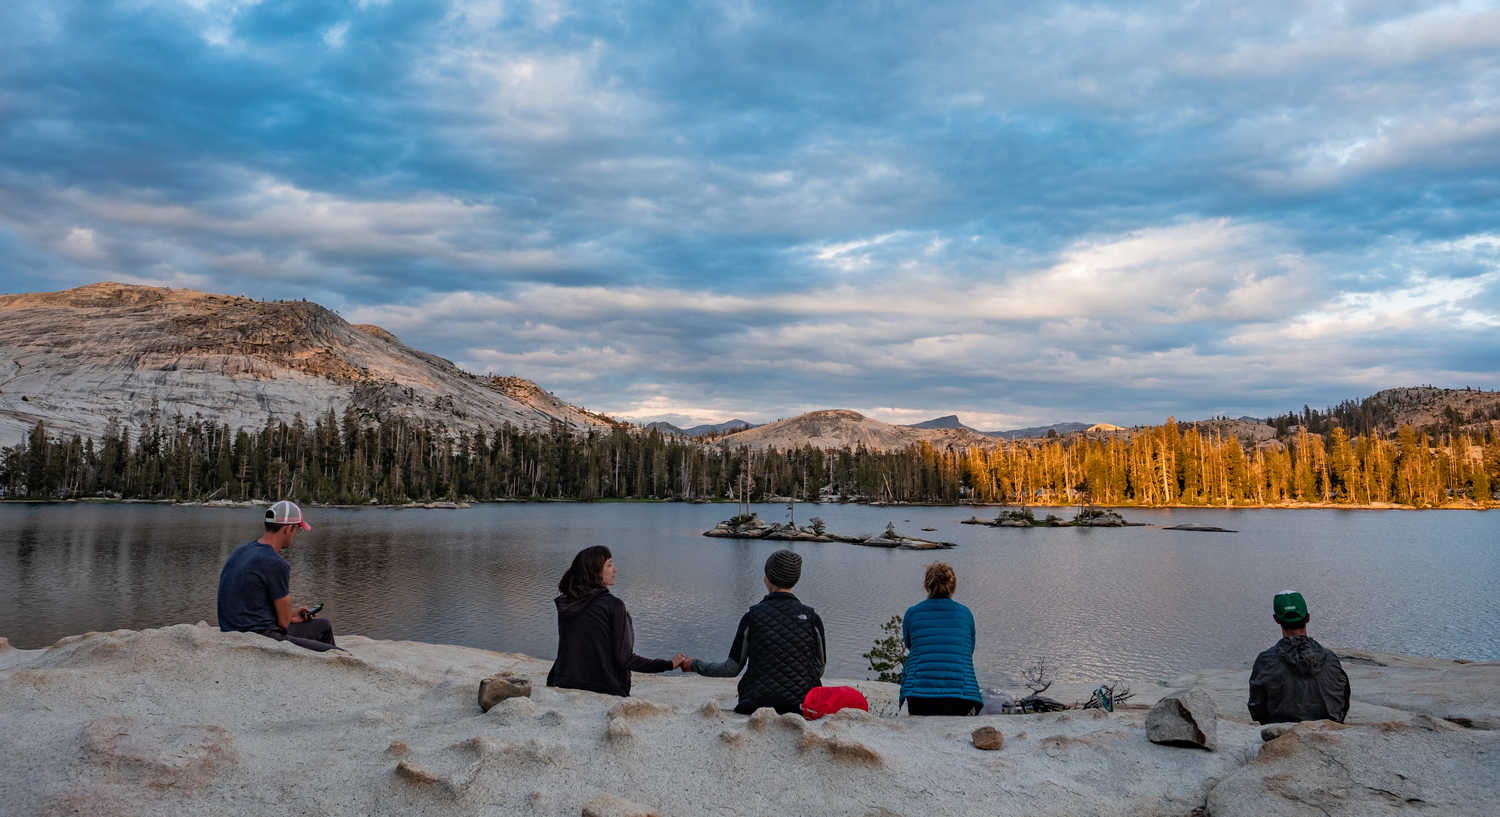 Evenings and mornings can be chilly in the Sierra, especially at altitude. Make sure you bright the correct clothing for a time of day when you are sitting and not generating heat through movement.   Photo by Duncan Cheung.